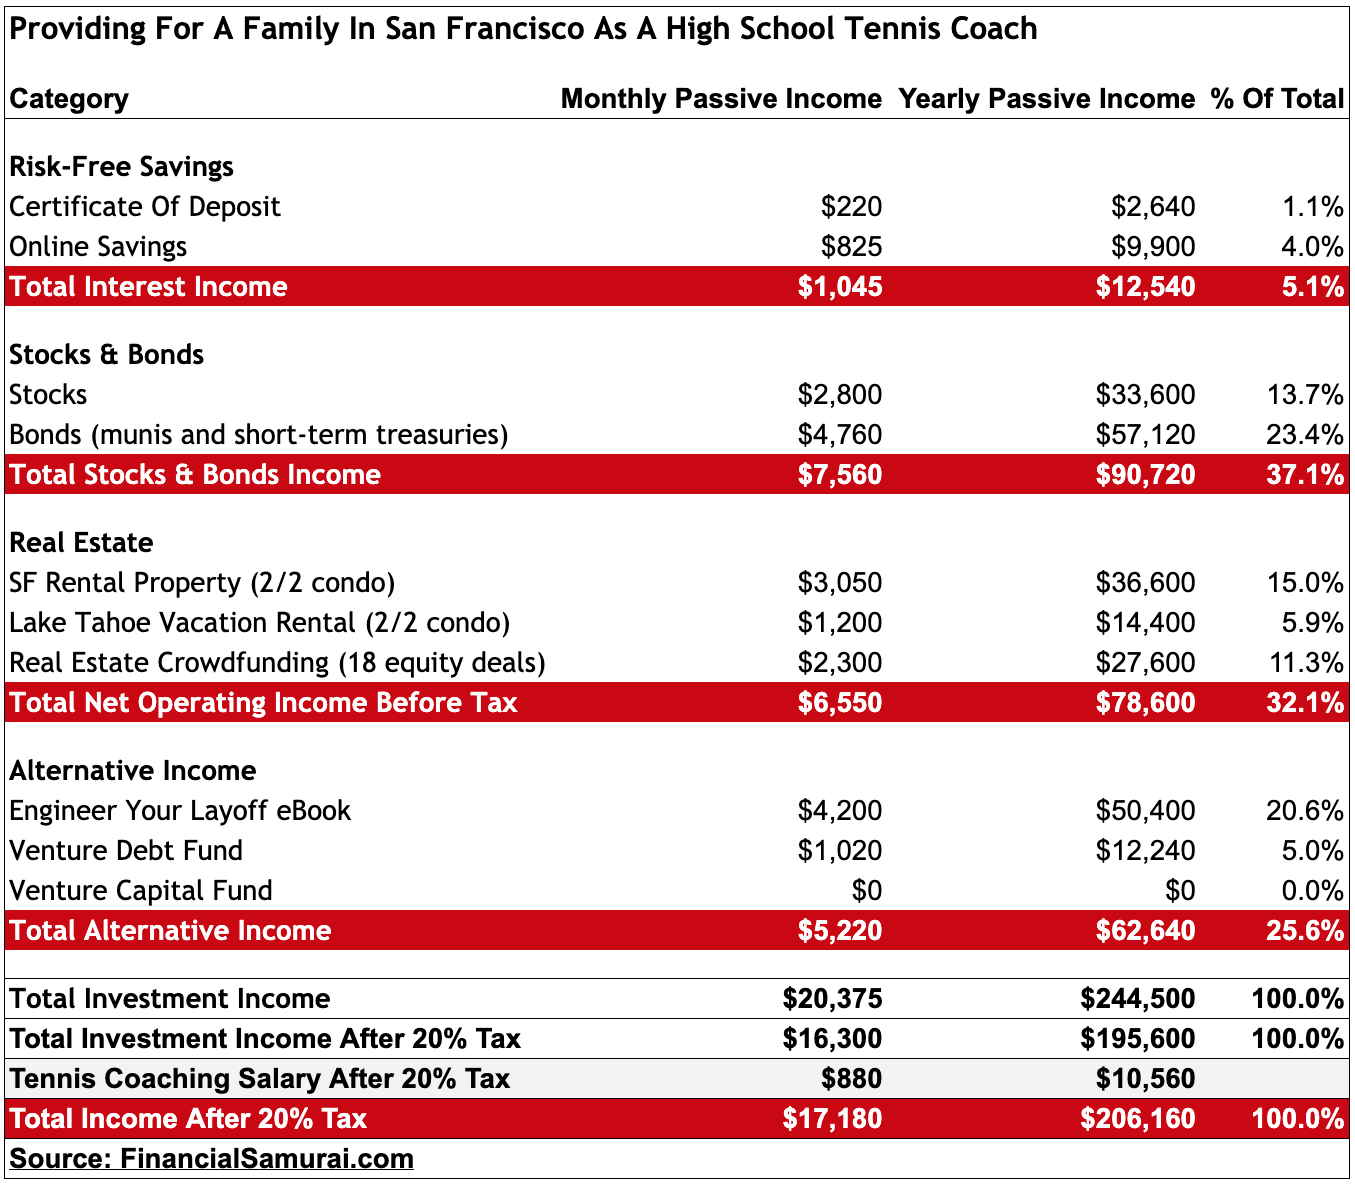 Proving for a family in San Francisco on a high school tennis coach income